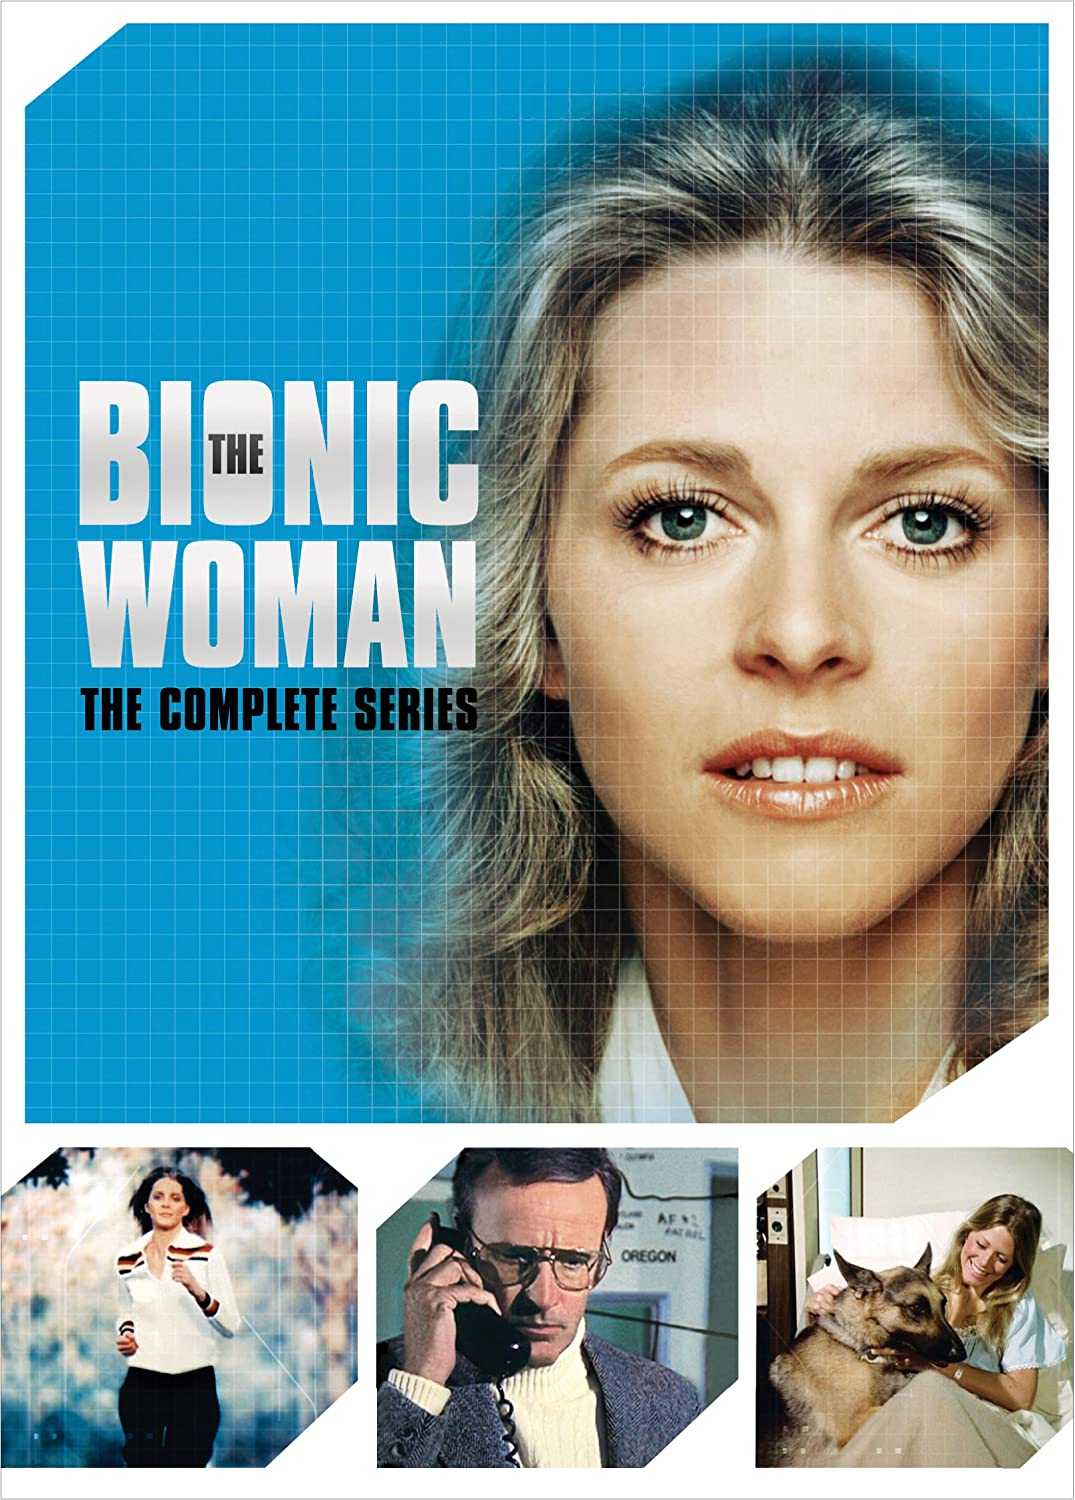 The Bionic Woman: The Complete Series Lindsay Wagner